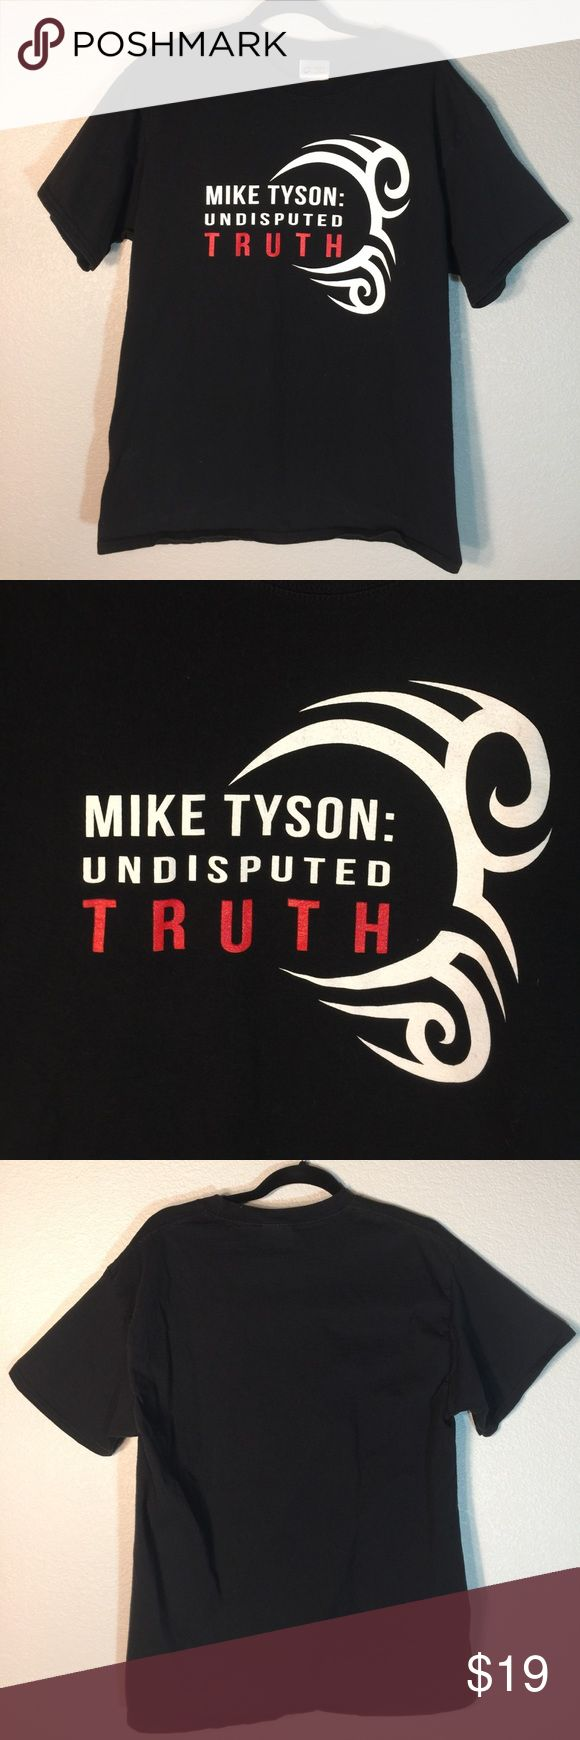 Mike Tyson Undisputed Truth Logo Tee Shirt Old school Mike Tyson Undisputed Truth Tee Shirt | Size: L (Men's) | Condition: Pre-owned (Worn, excellent condition, no major flaws!) Shirts Tees - Short Sleeve